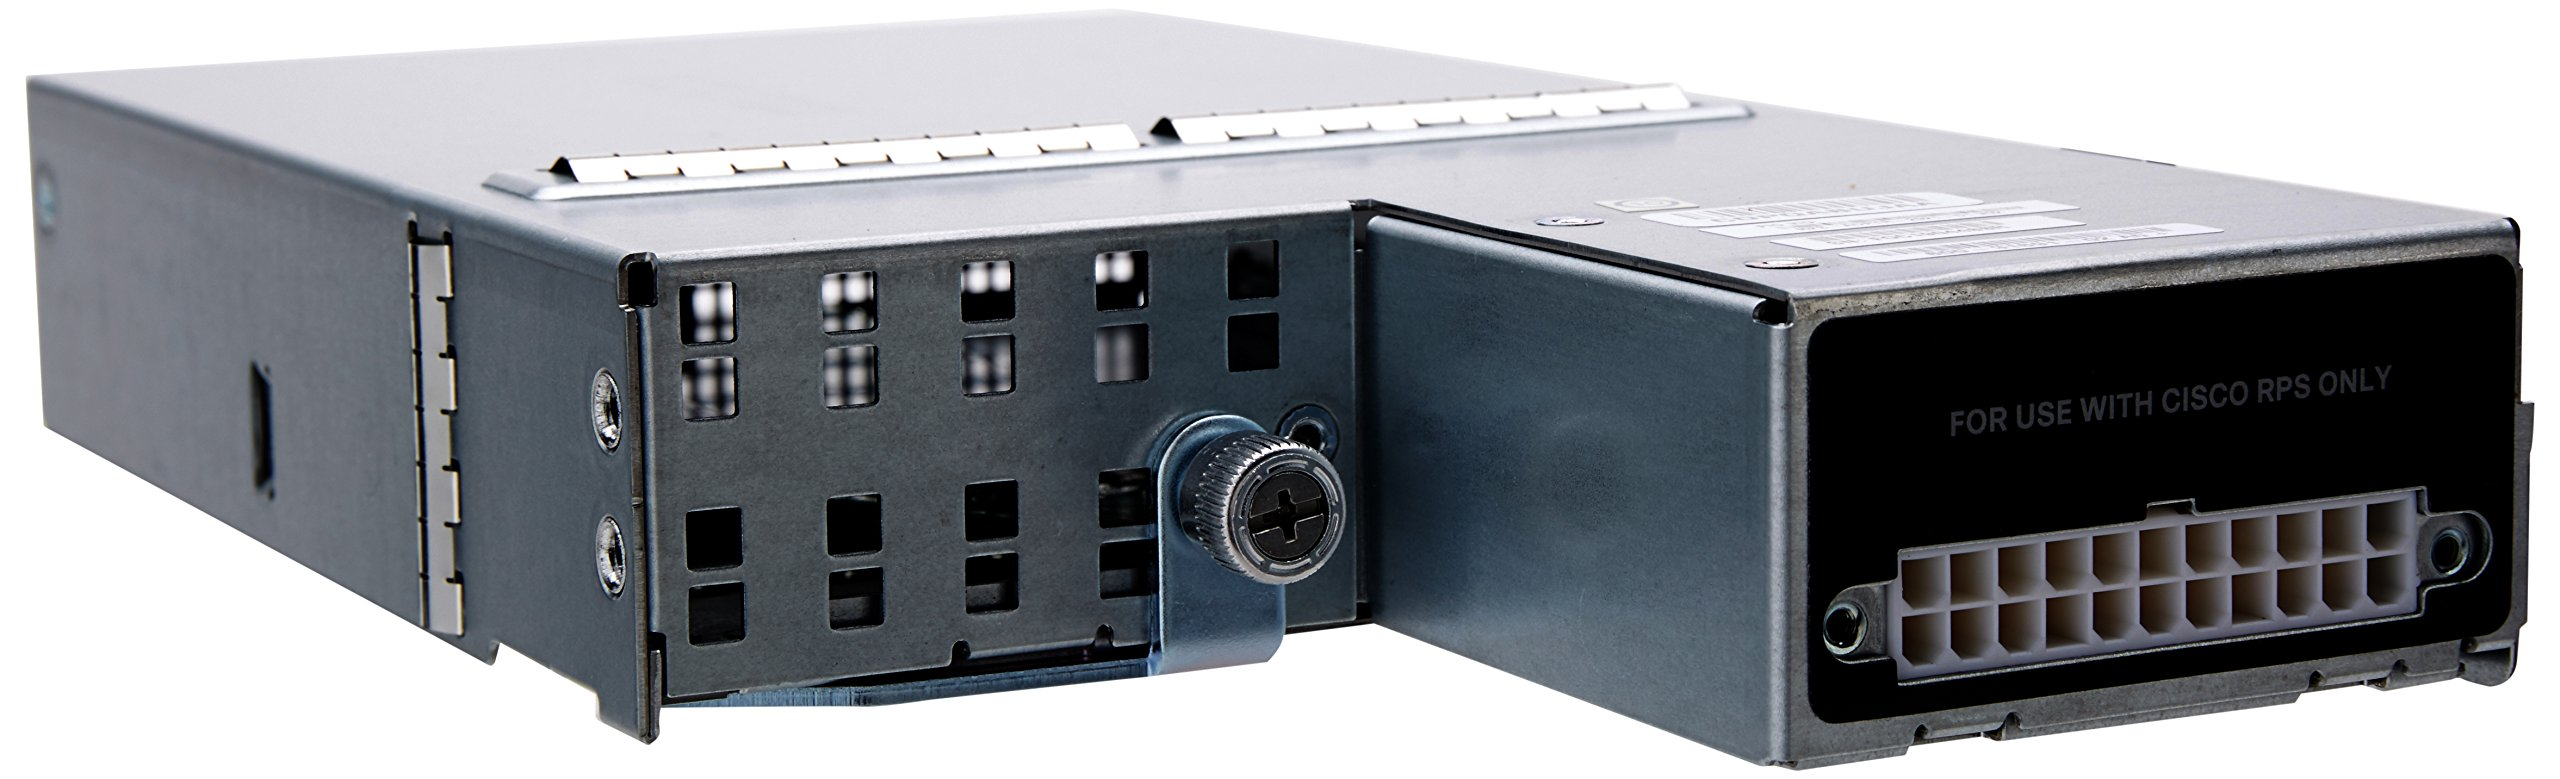 Cisco network device RPS adapter plate for 2921, 2951 & Redundant Power System 2300 (RPS-ADPTR-2921-51=)